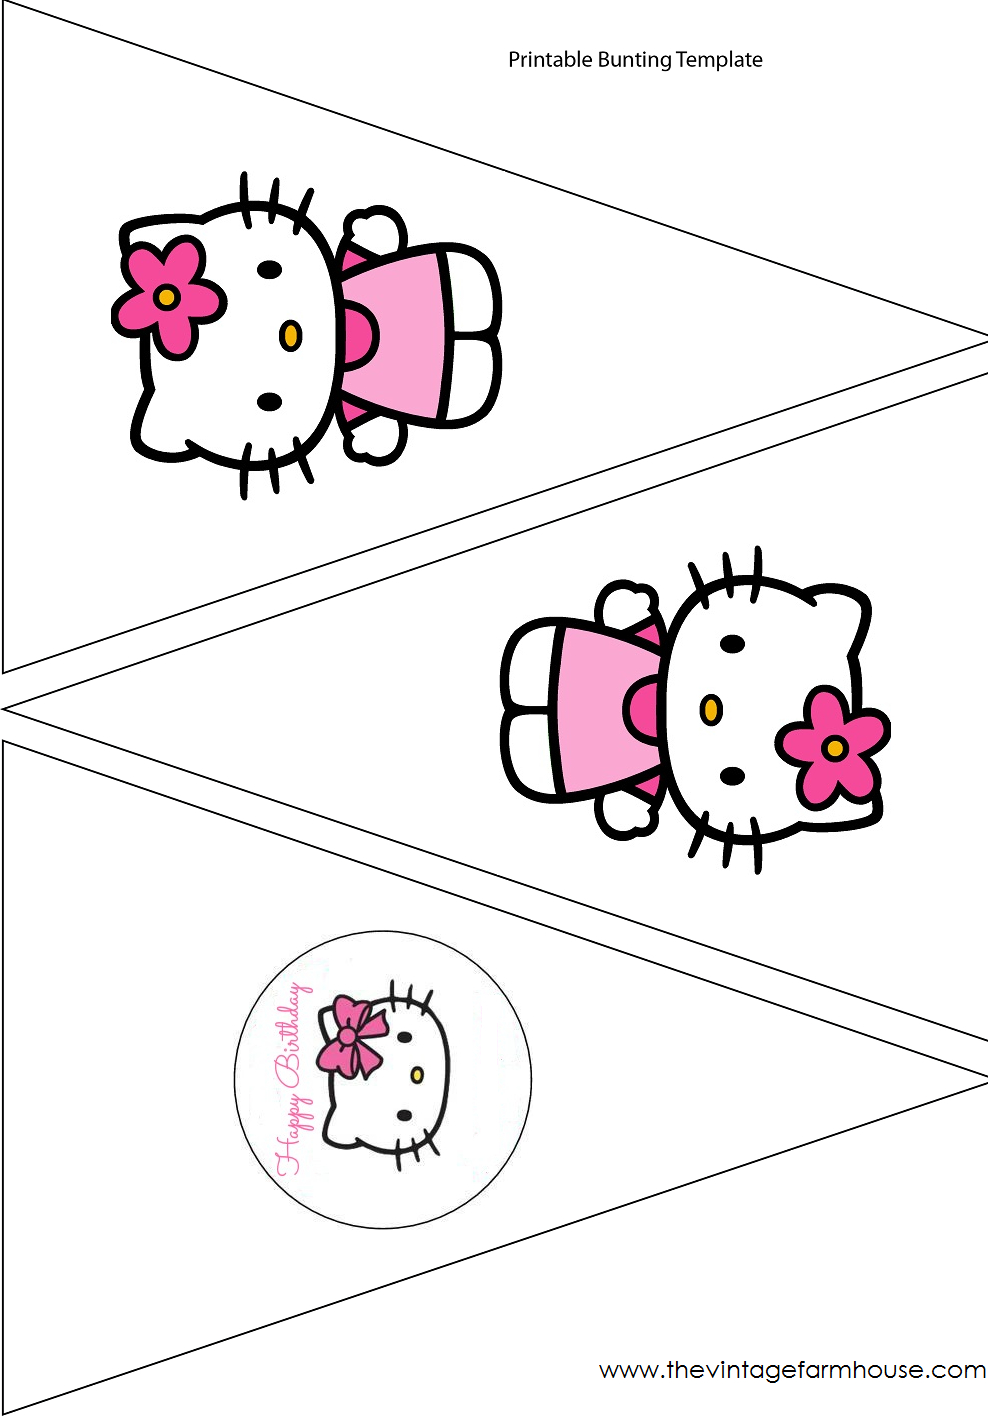 Simple Cute Hello Kitty Free Printable Kit. - Oh My Fiesta In Hello Kitty Banner Template